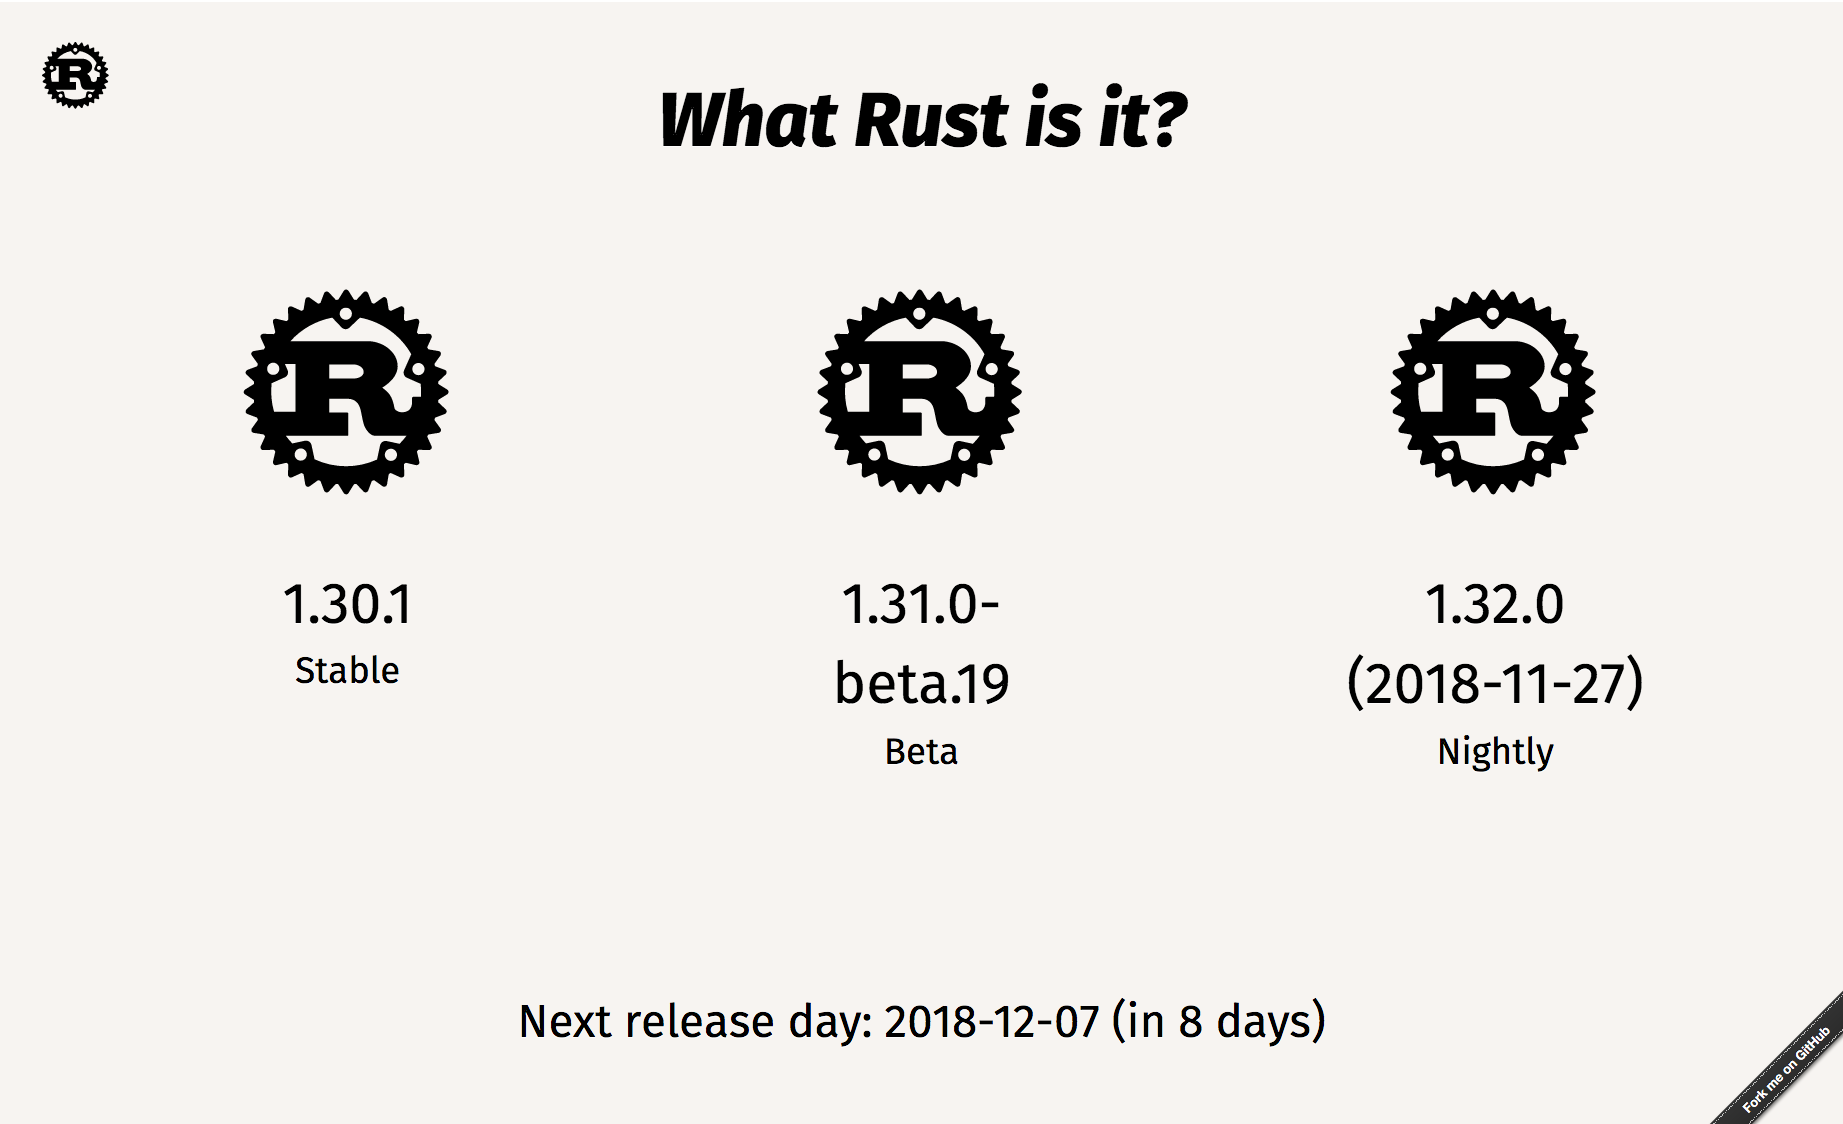 What Rust is it? - Screenshot of the website